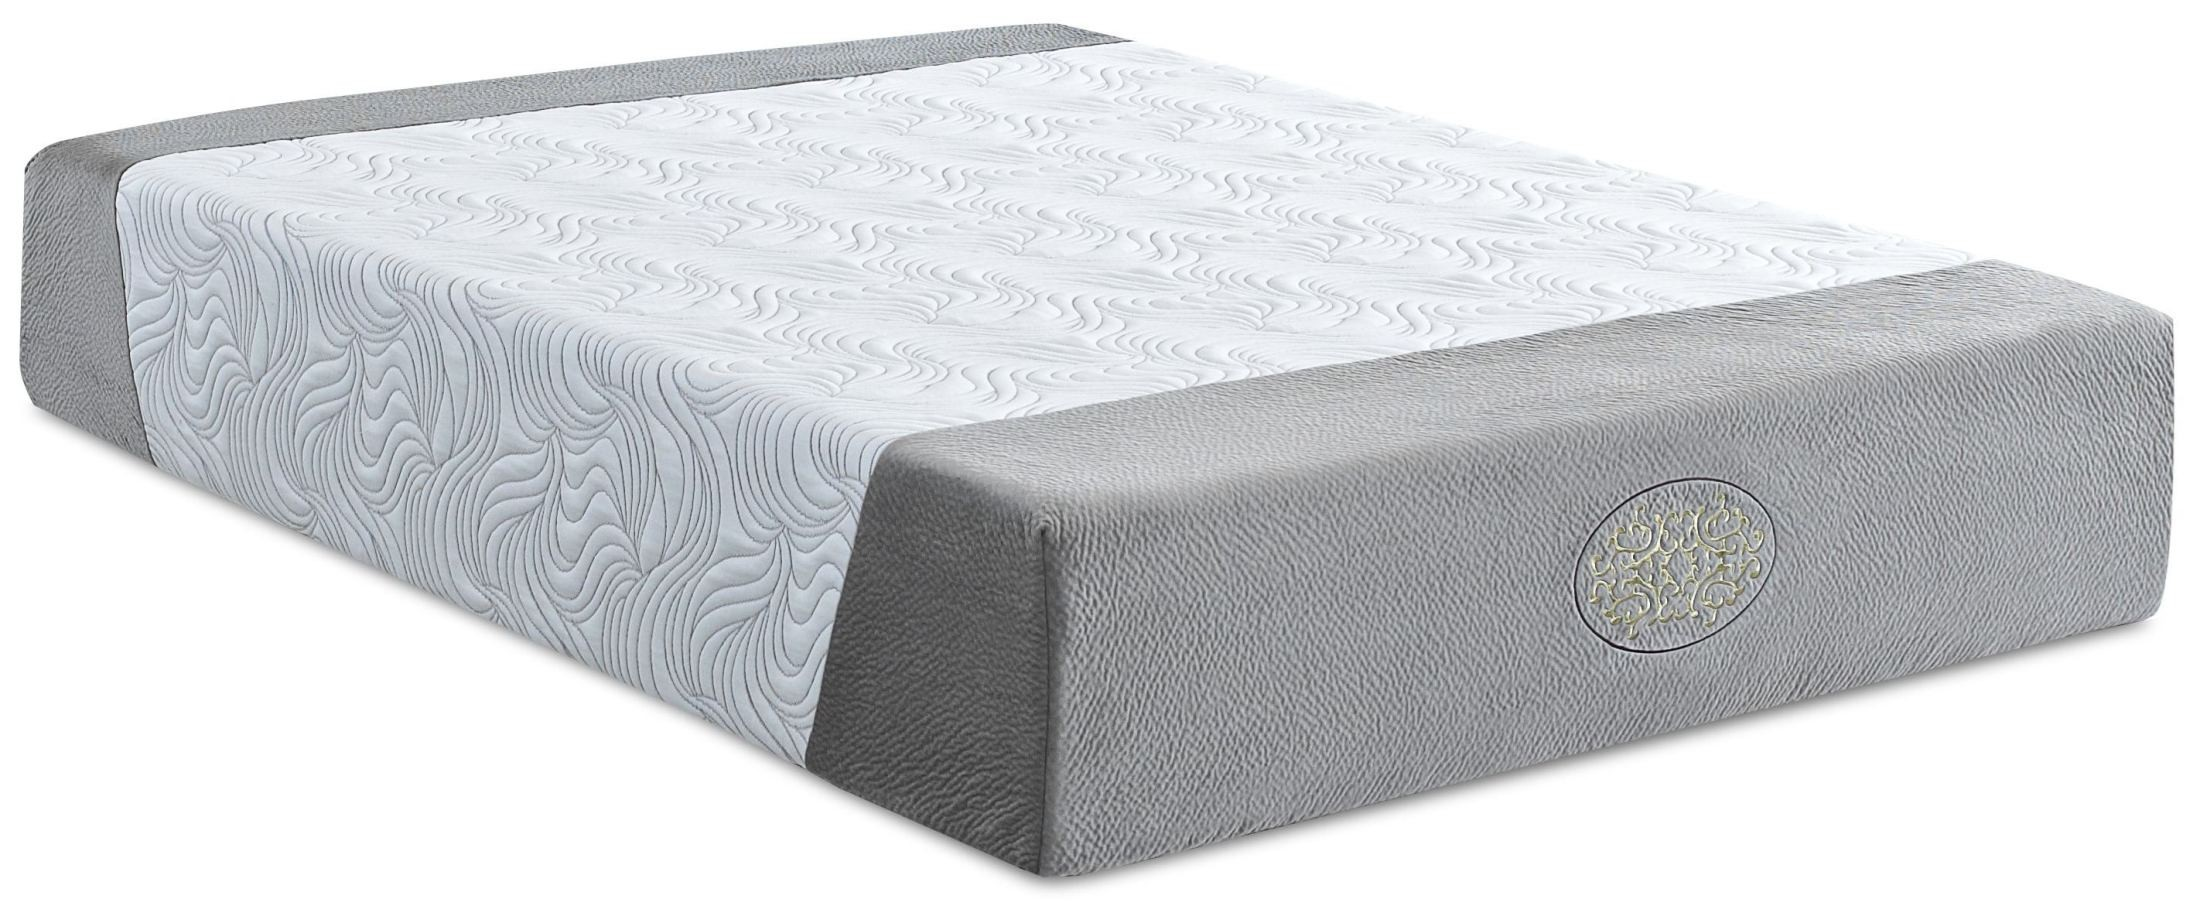 Affinity Twin Extra Long Mattress Affintxl 012013200865 Klaussner